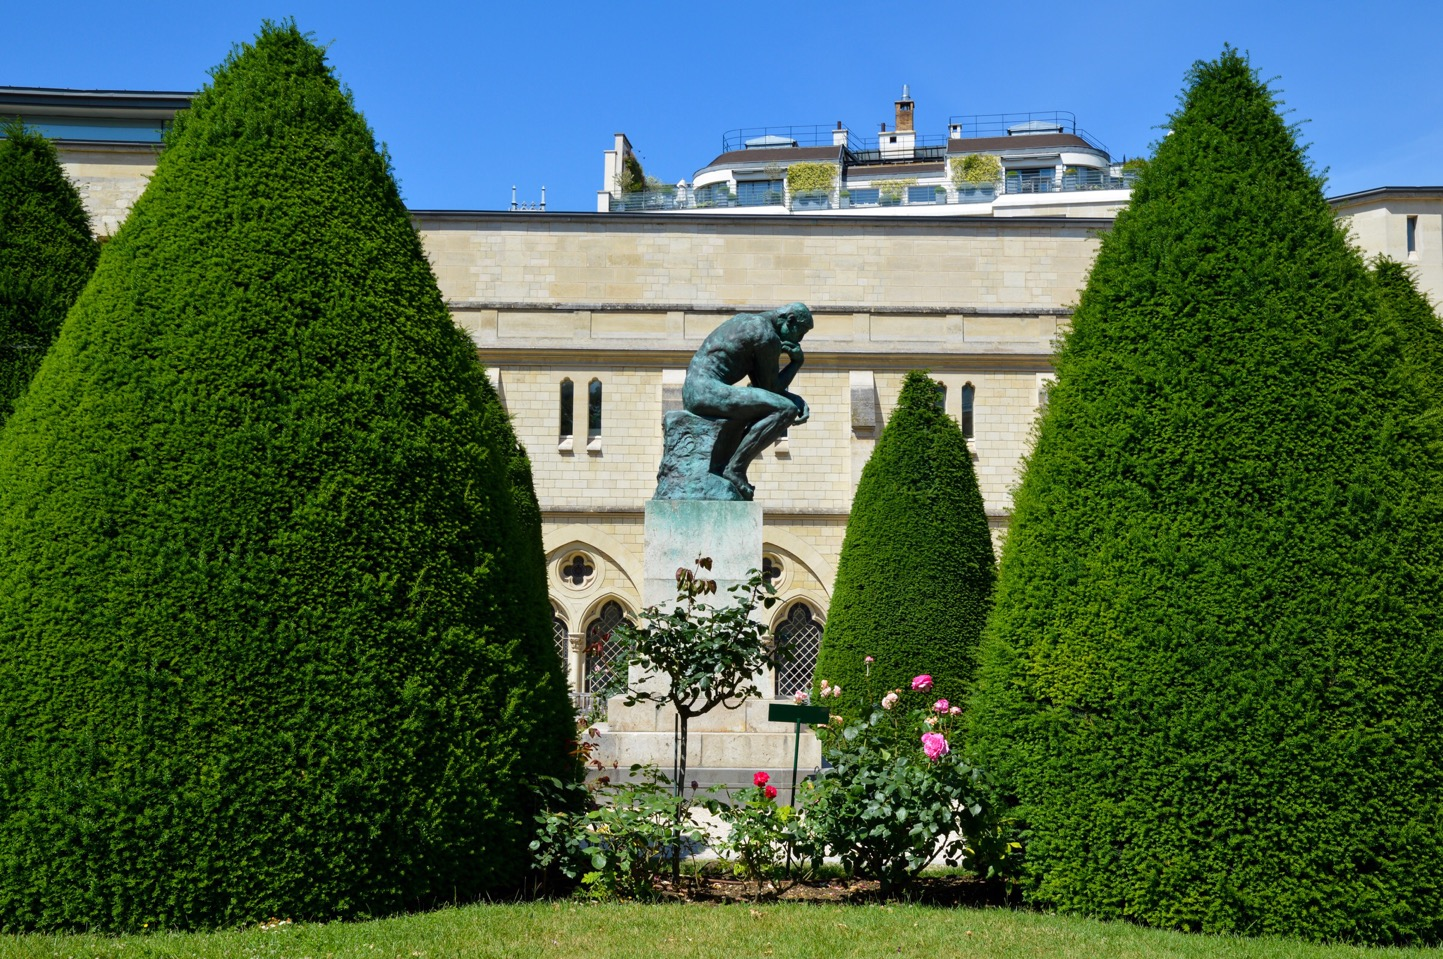 The Thinker, Rodin Museum, Paris, France